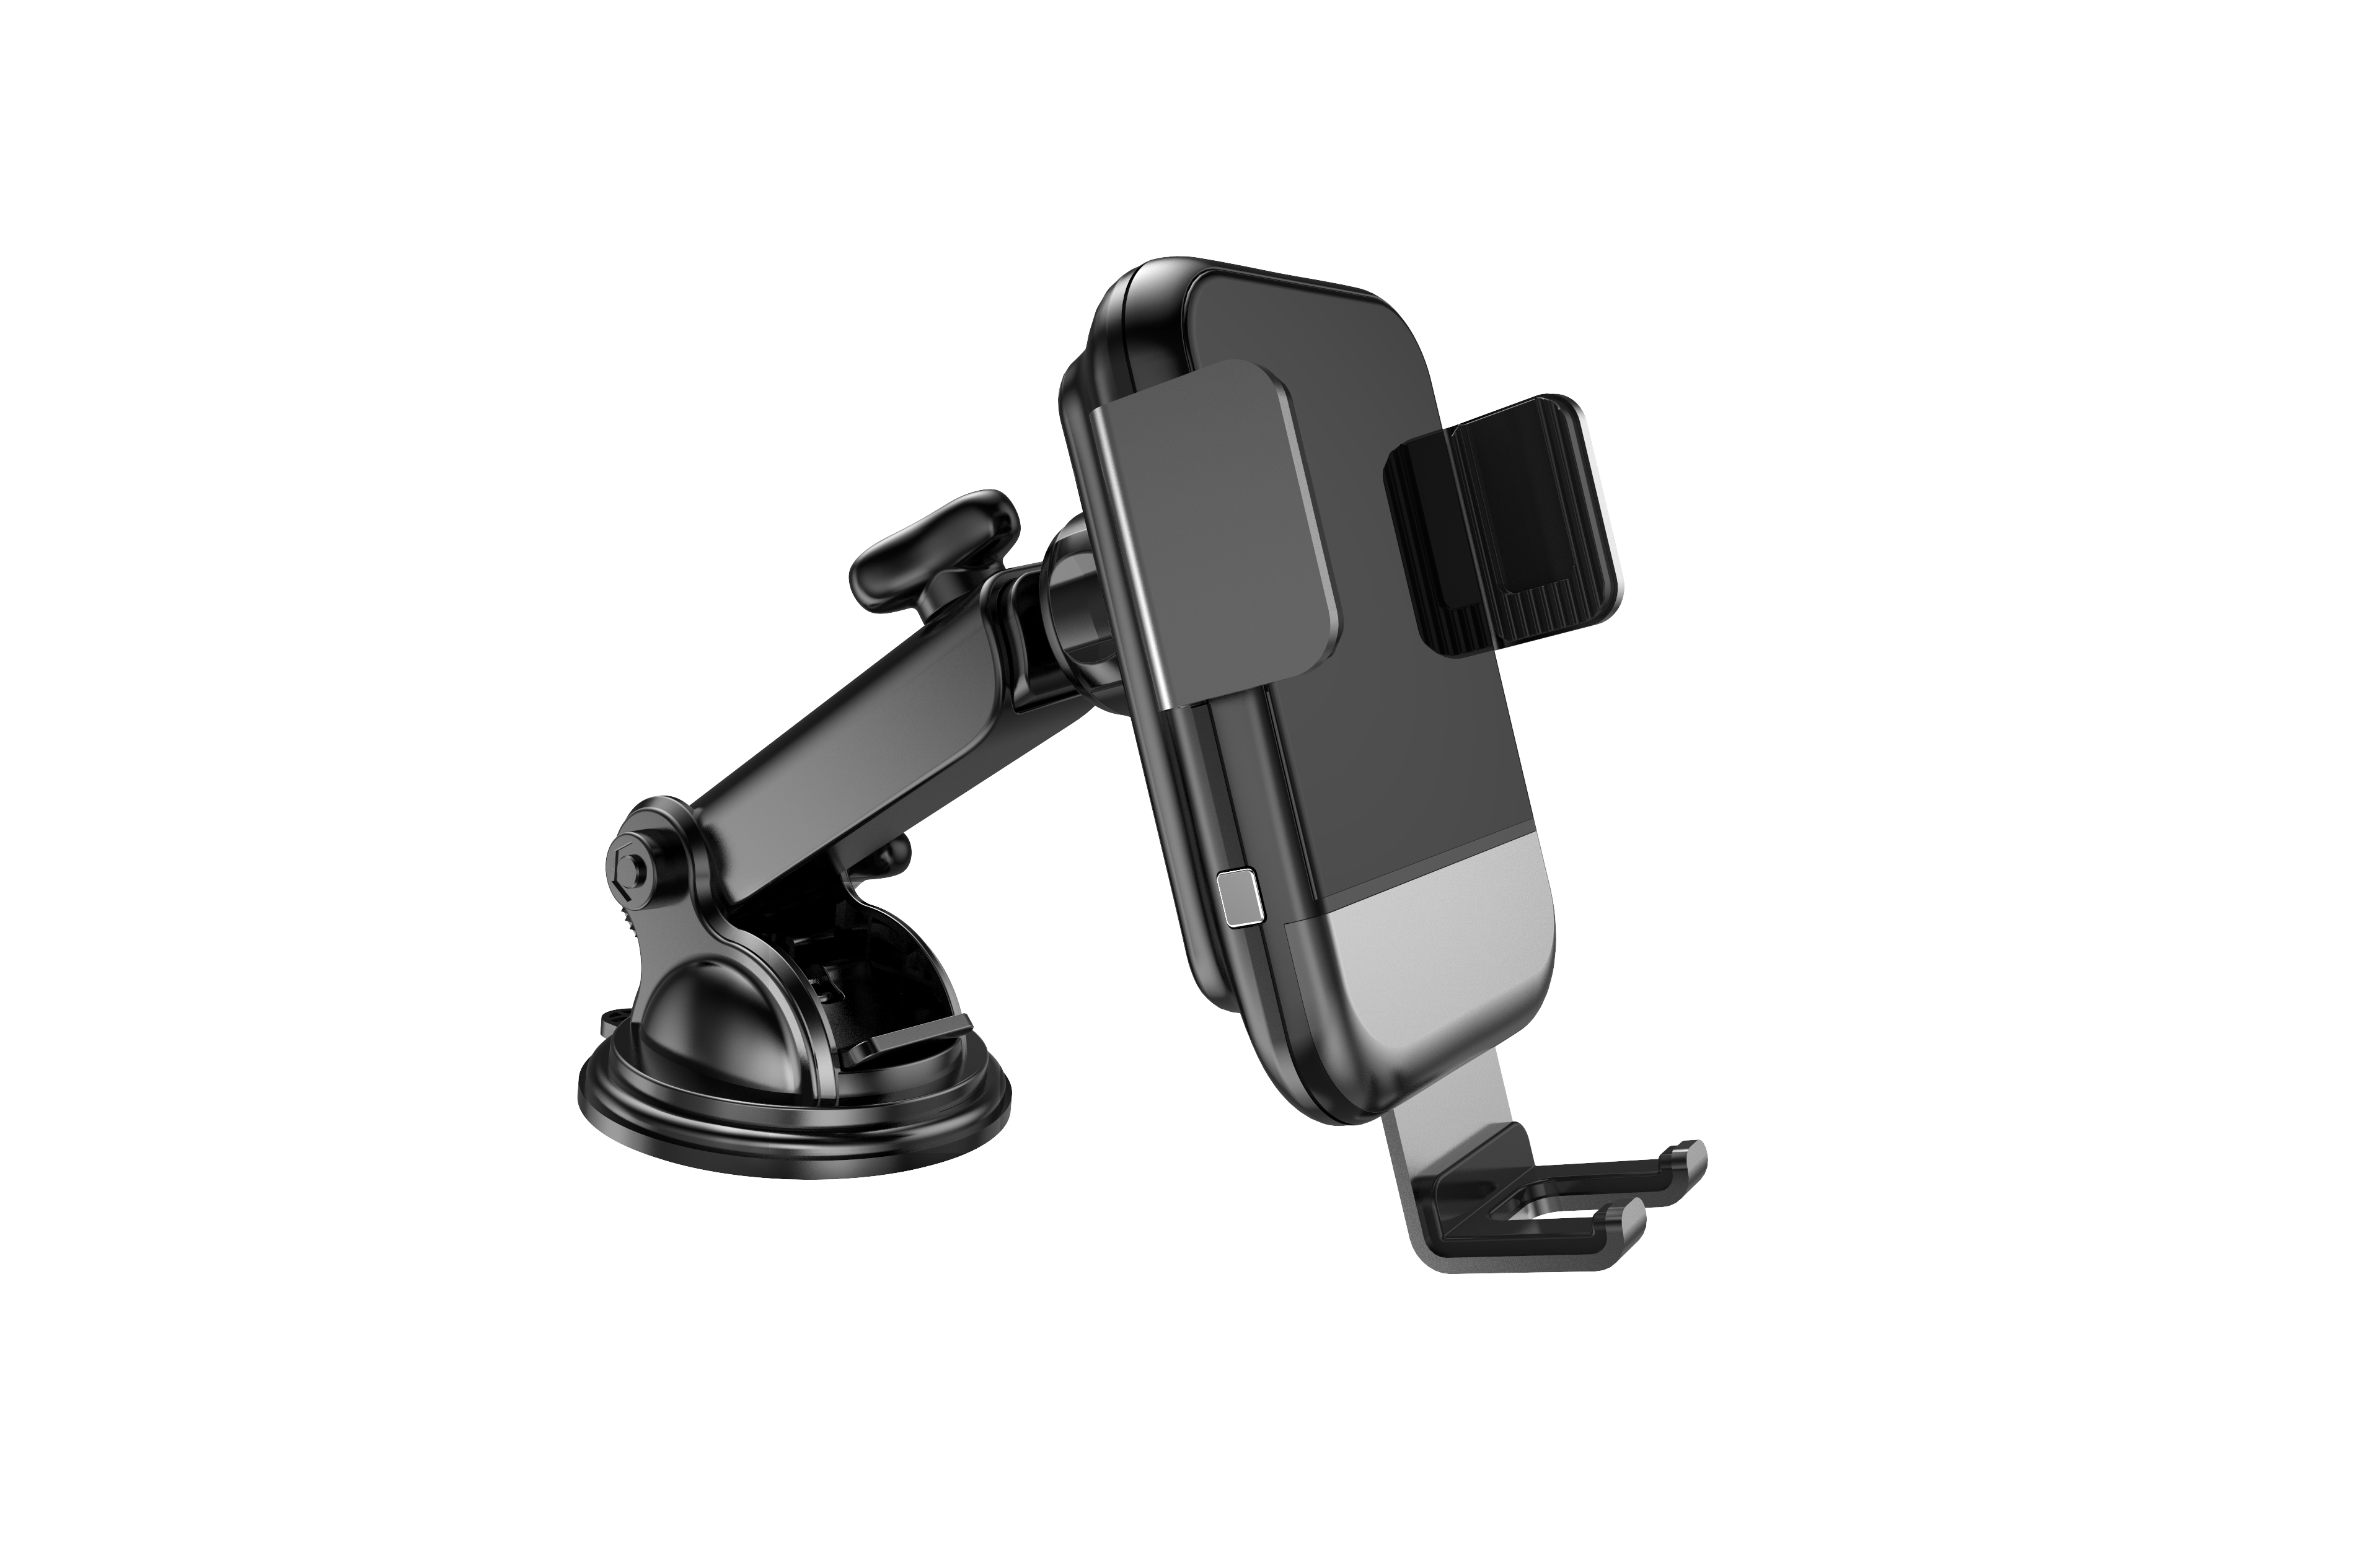 Kogan Mobile Contact Number Kogan Auto Clamping 10w Qi Fast Charge 2 In 1 Car Mount